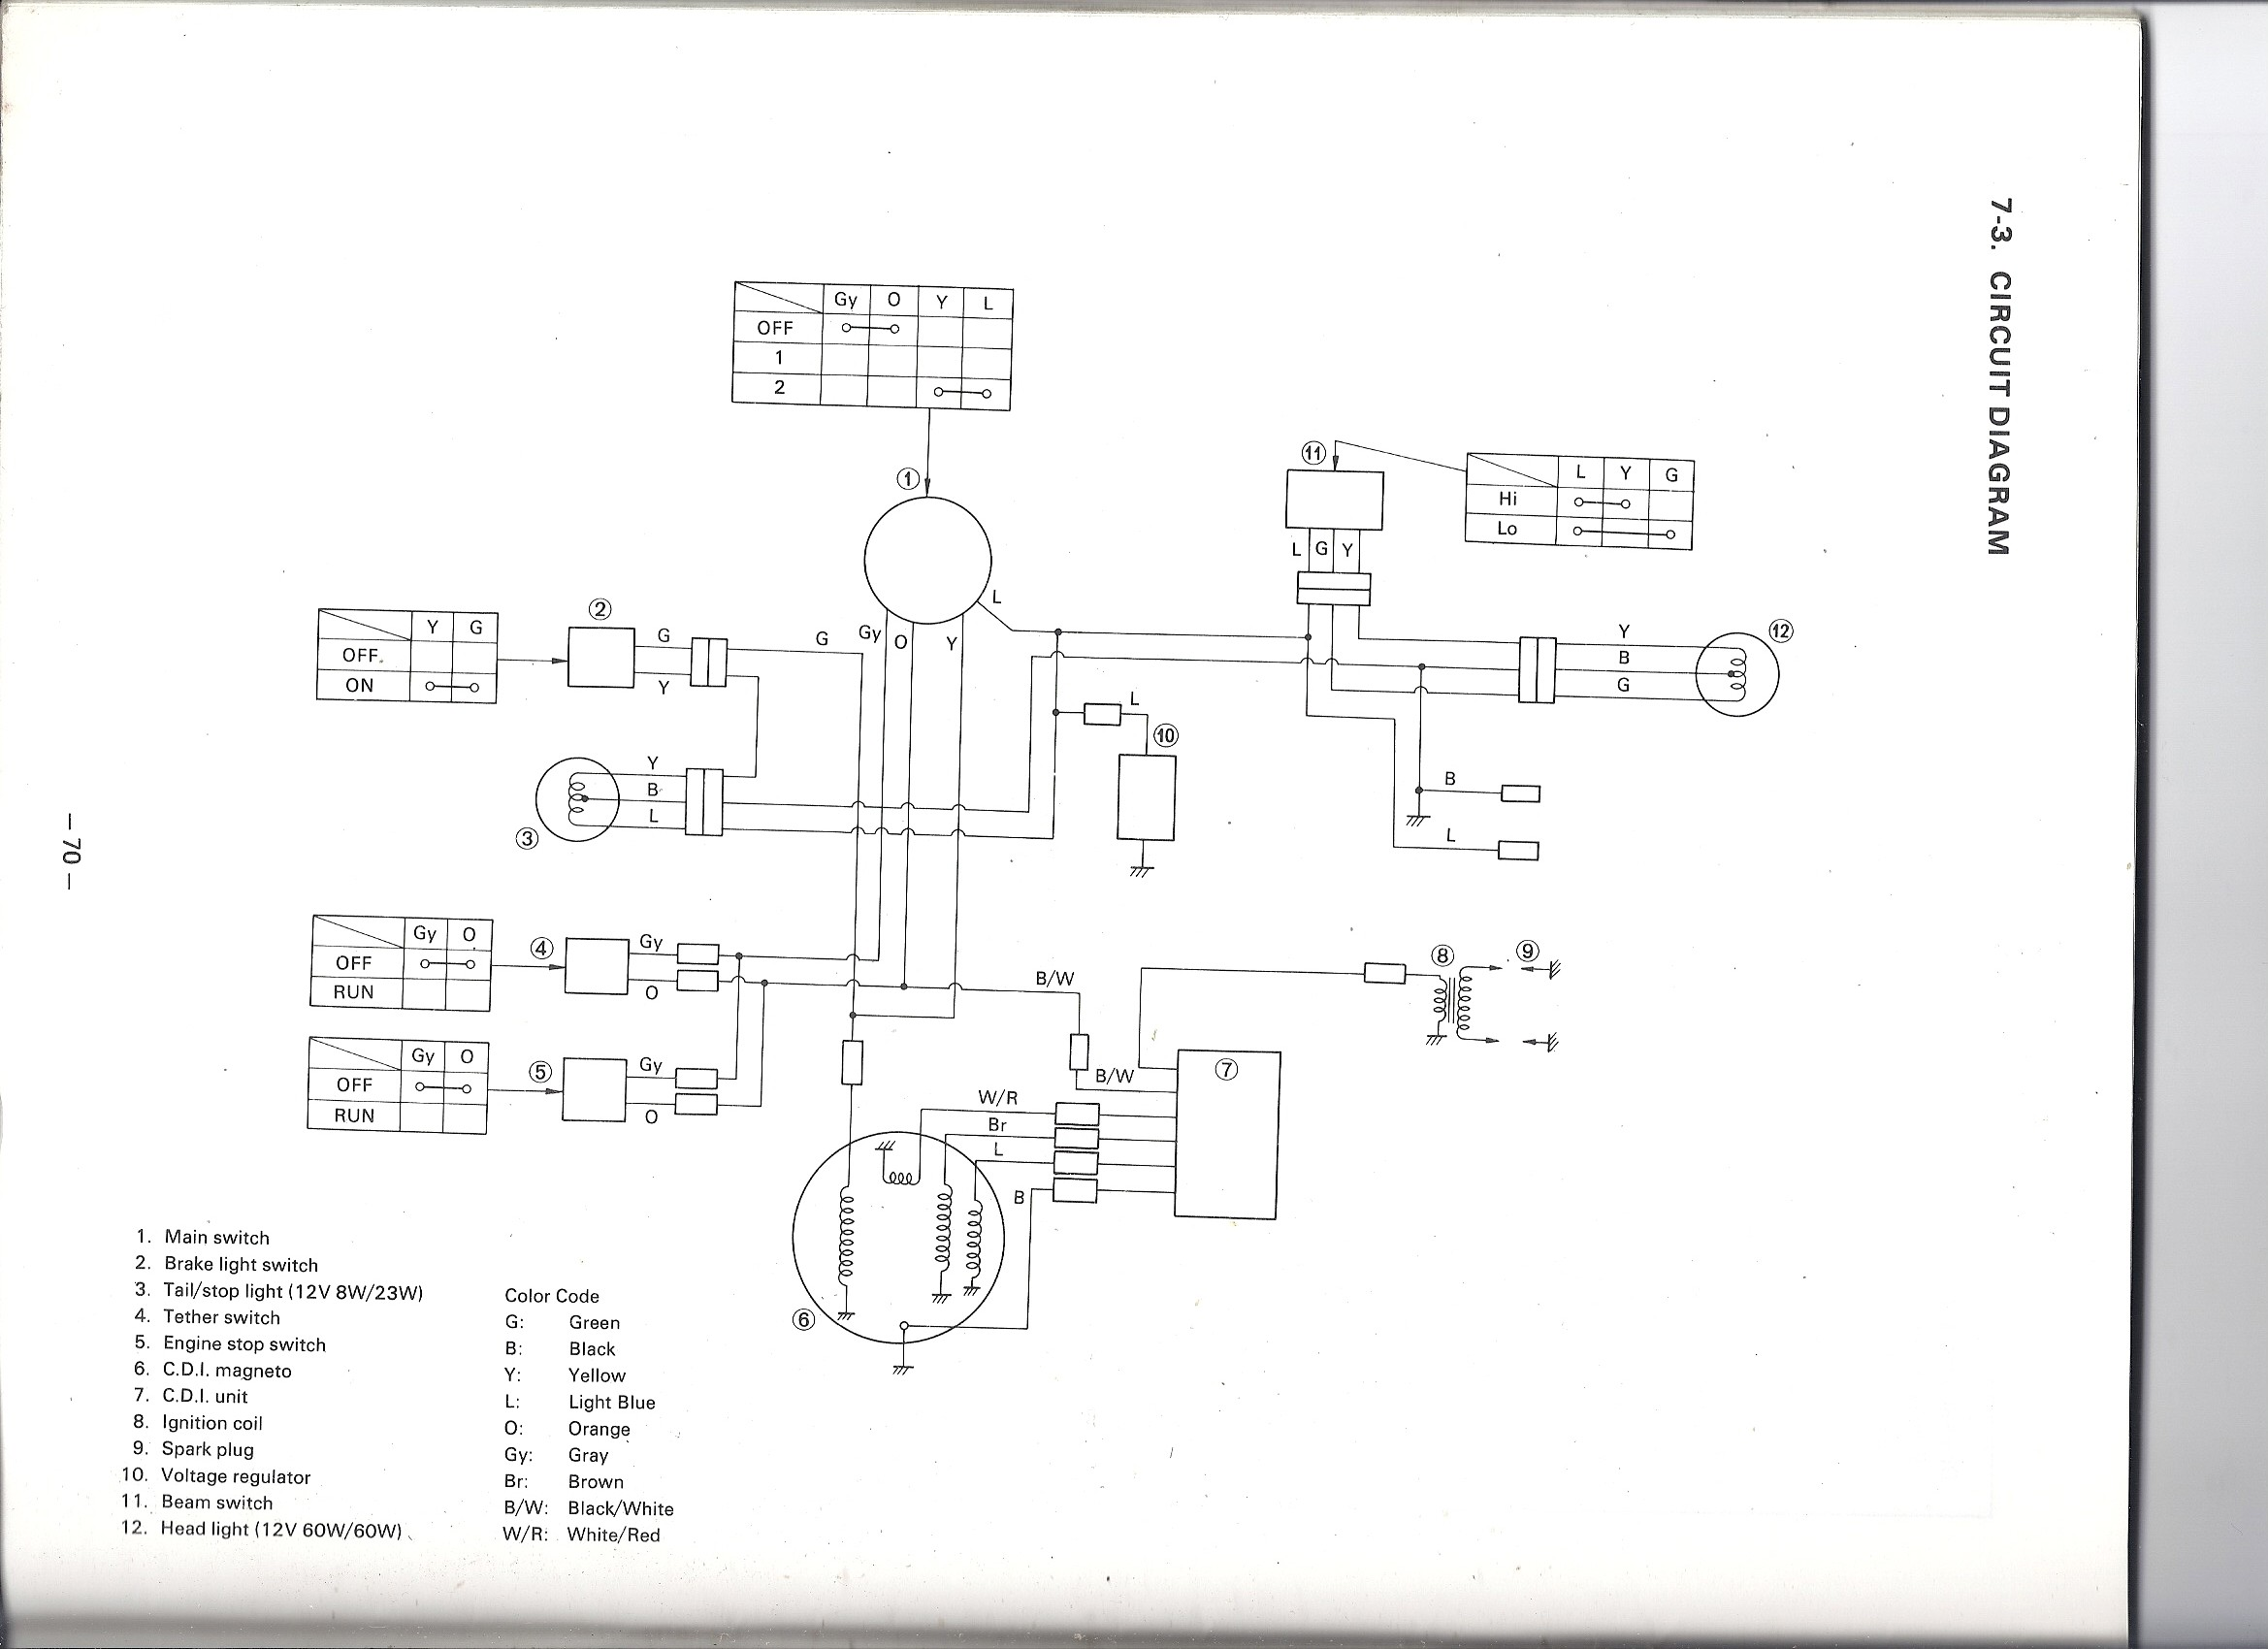 1979 enticer question having trouble logging in on 2smoke yamaha enticer 250 wiring diagram at soozxer.org